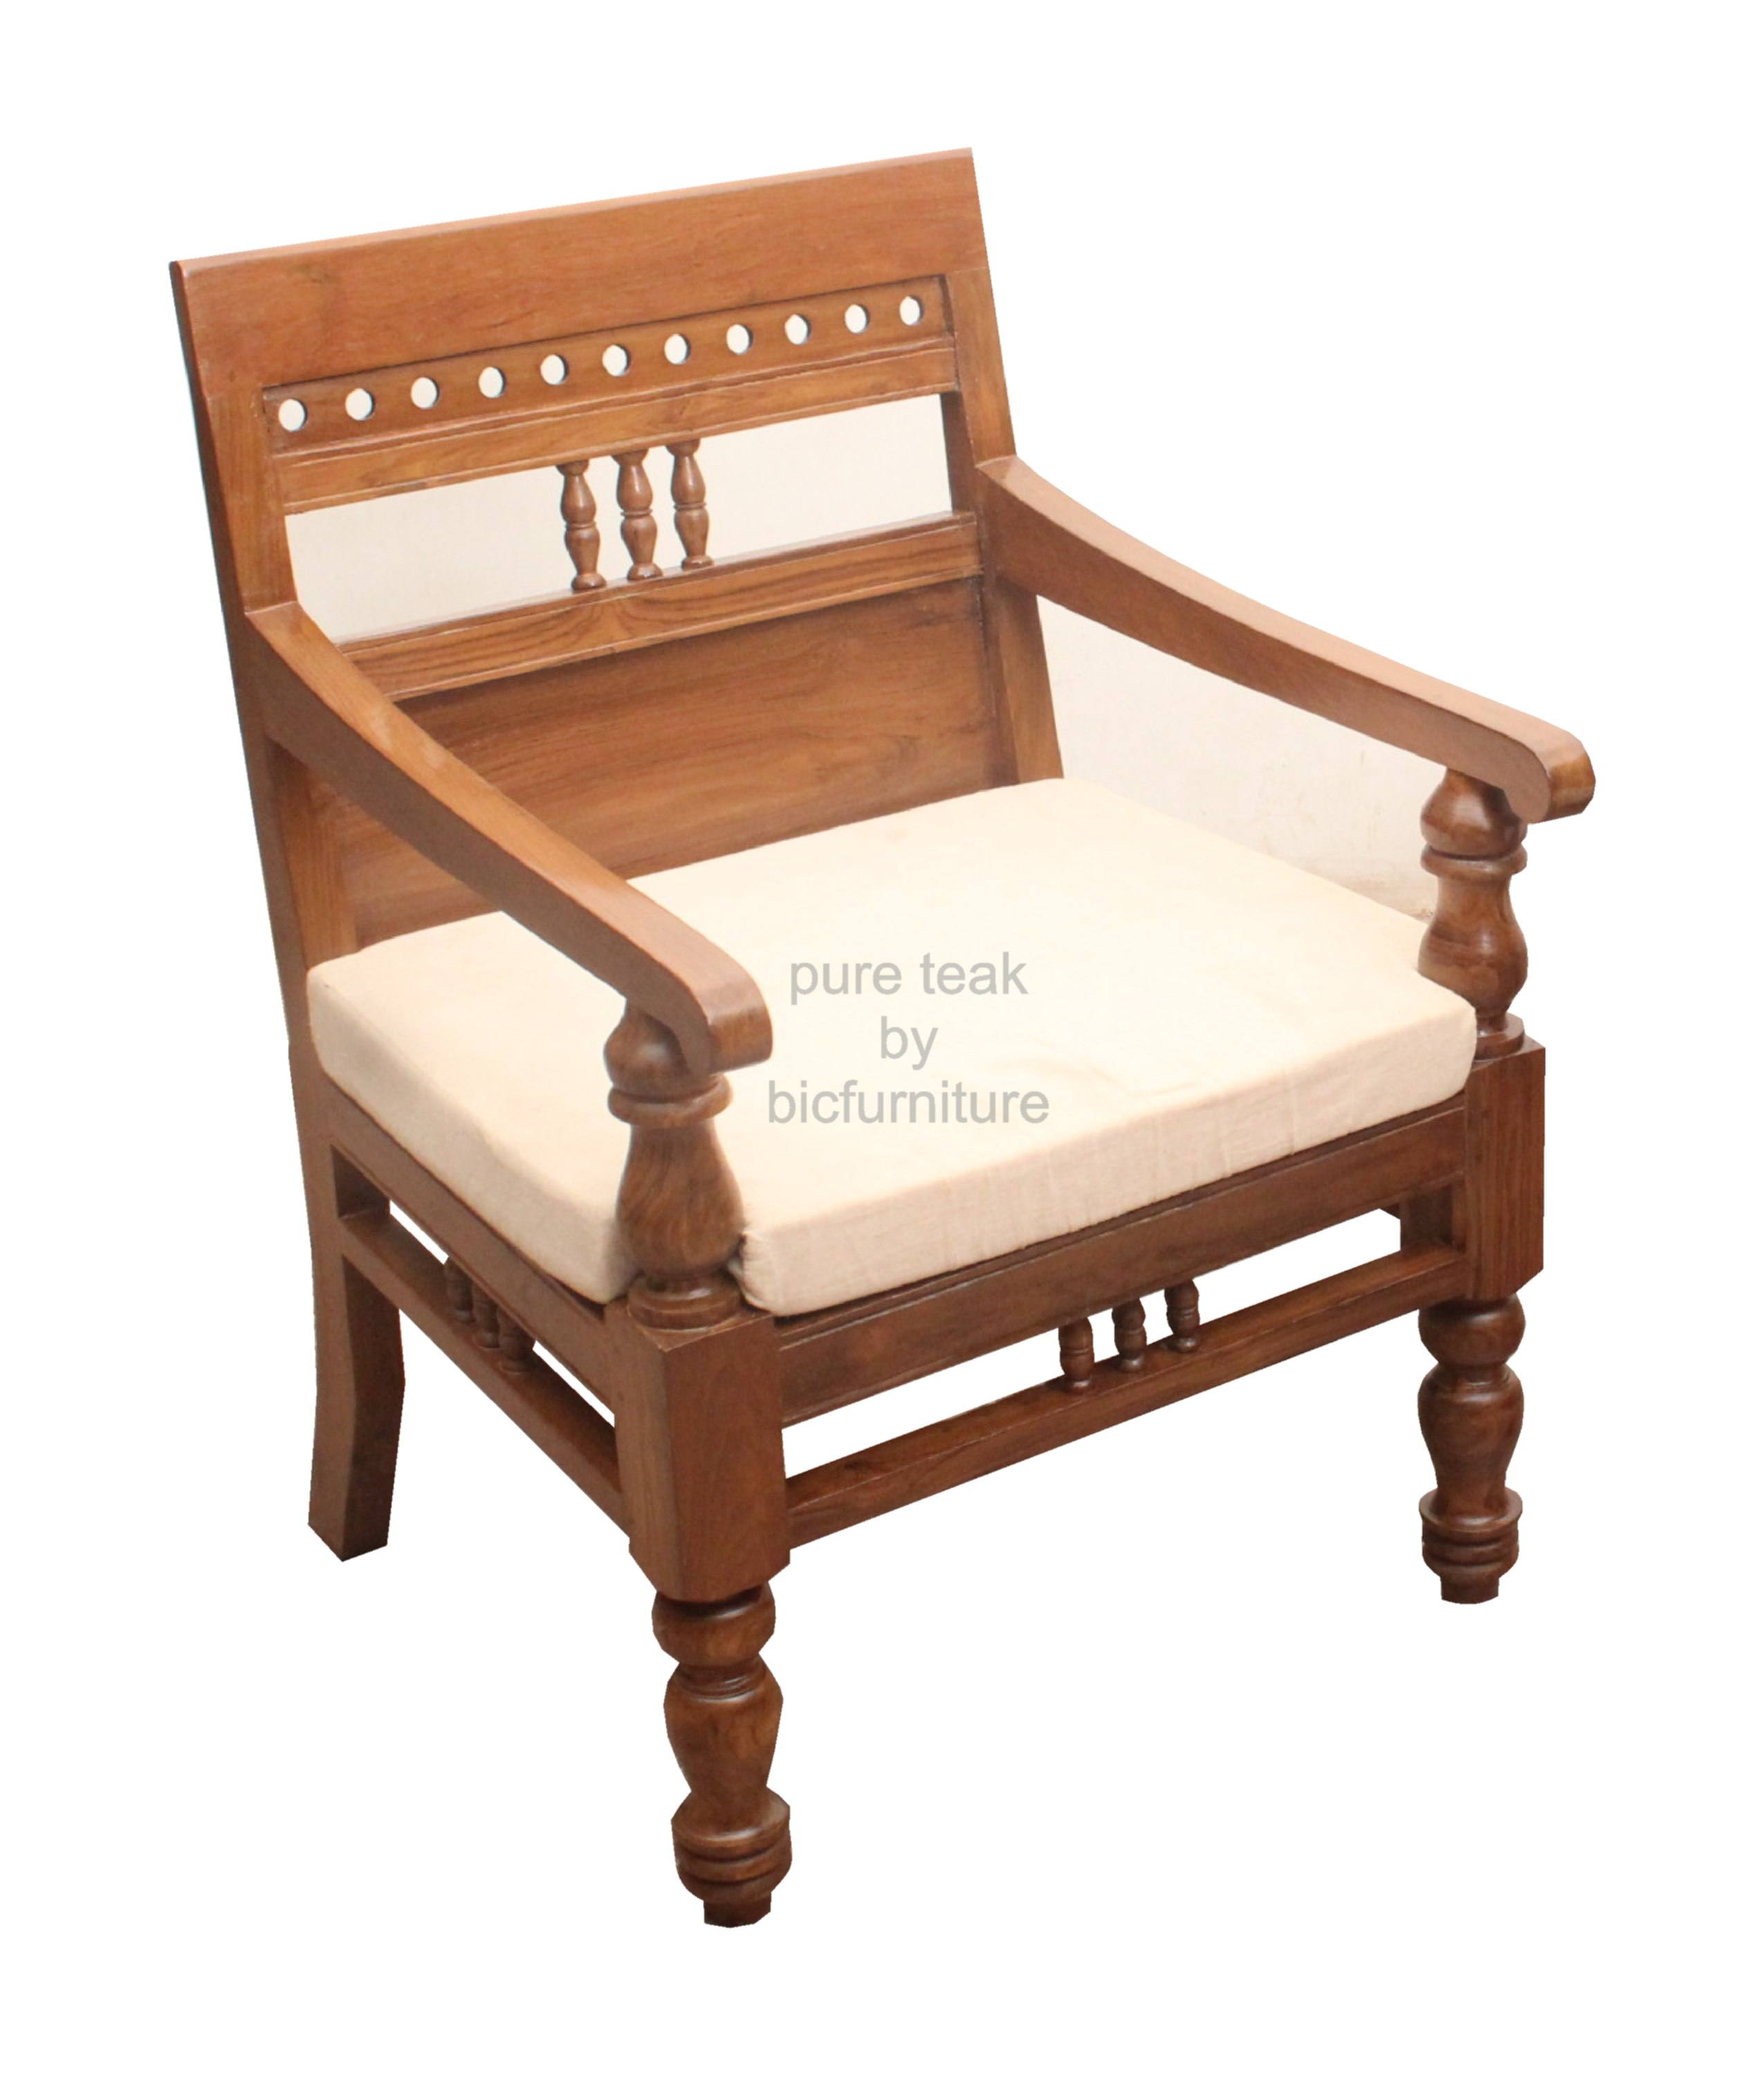 100 Buy Teak Wood Sofa Set Online India Malaysia Wood Sofa Sets Furniture Malaysia Wood